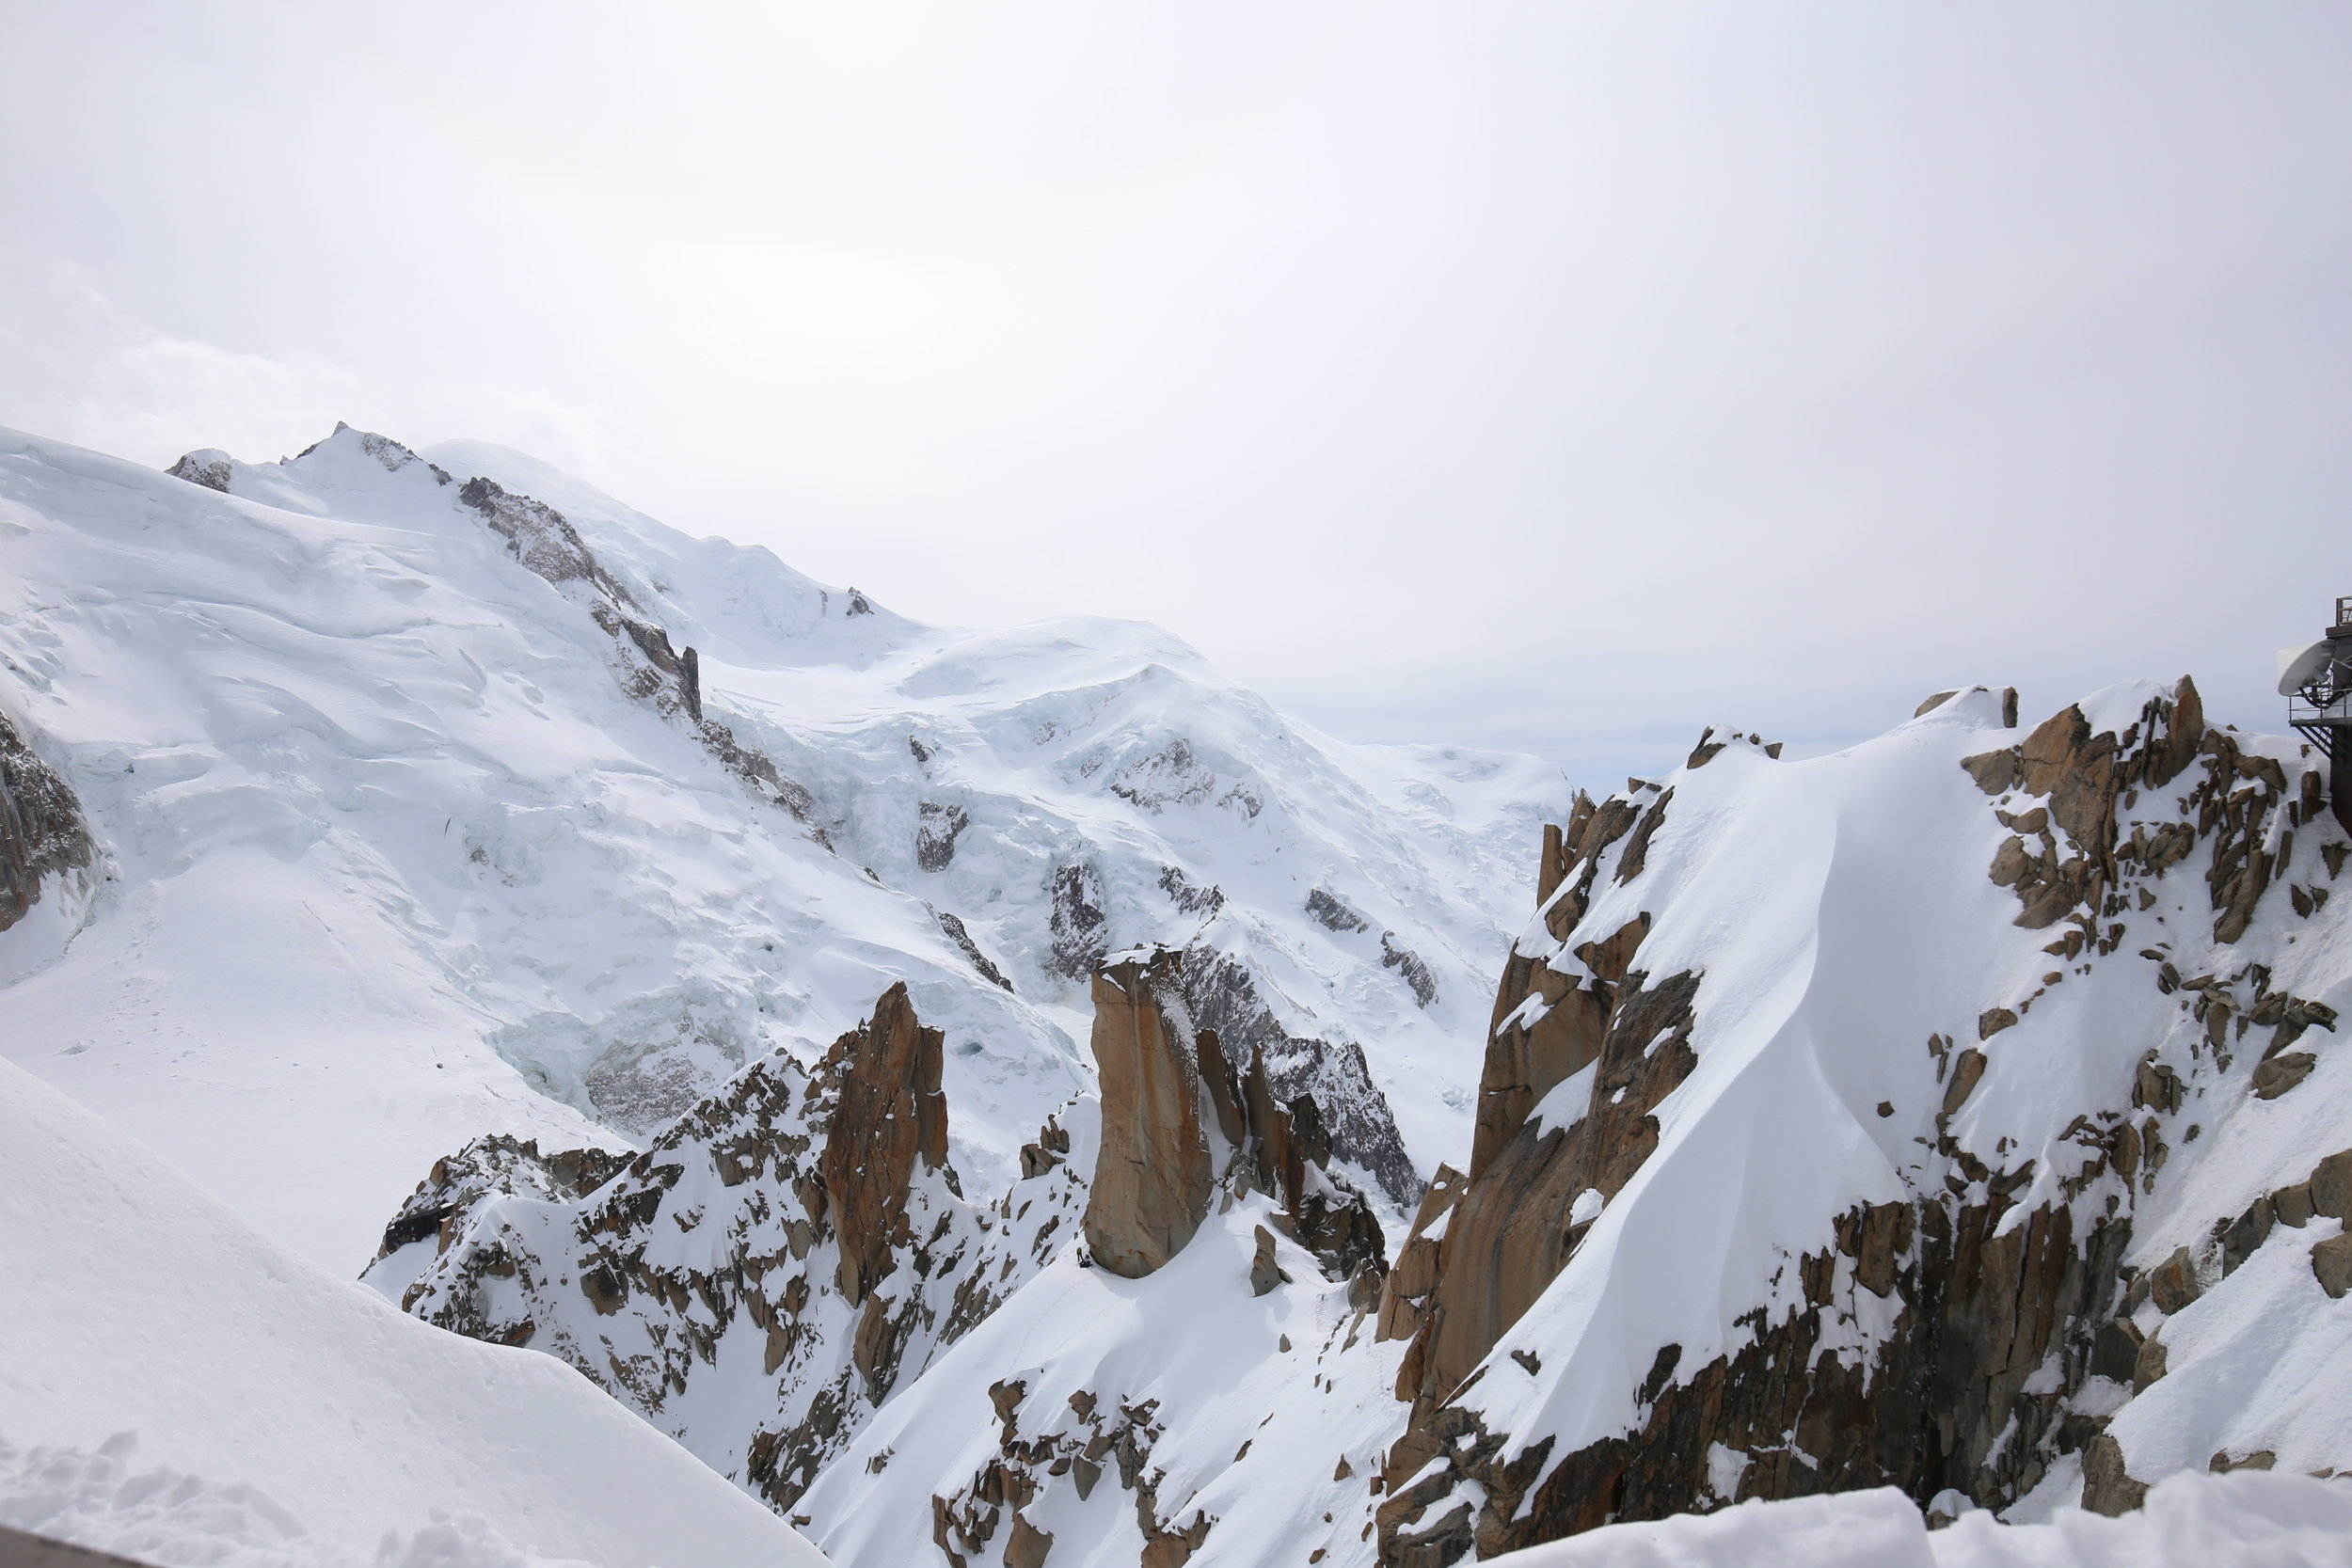 Views over the Alps and Mont Blanc - spectacular snowy mountains.